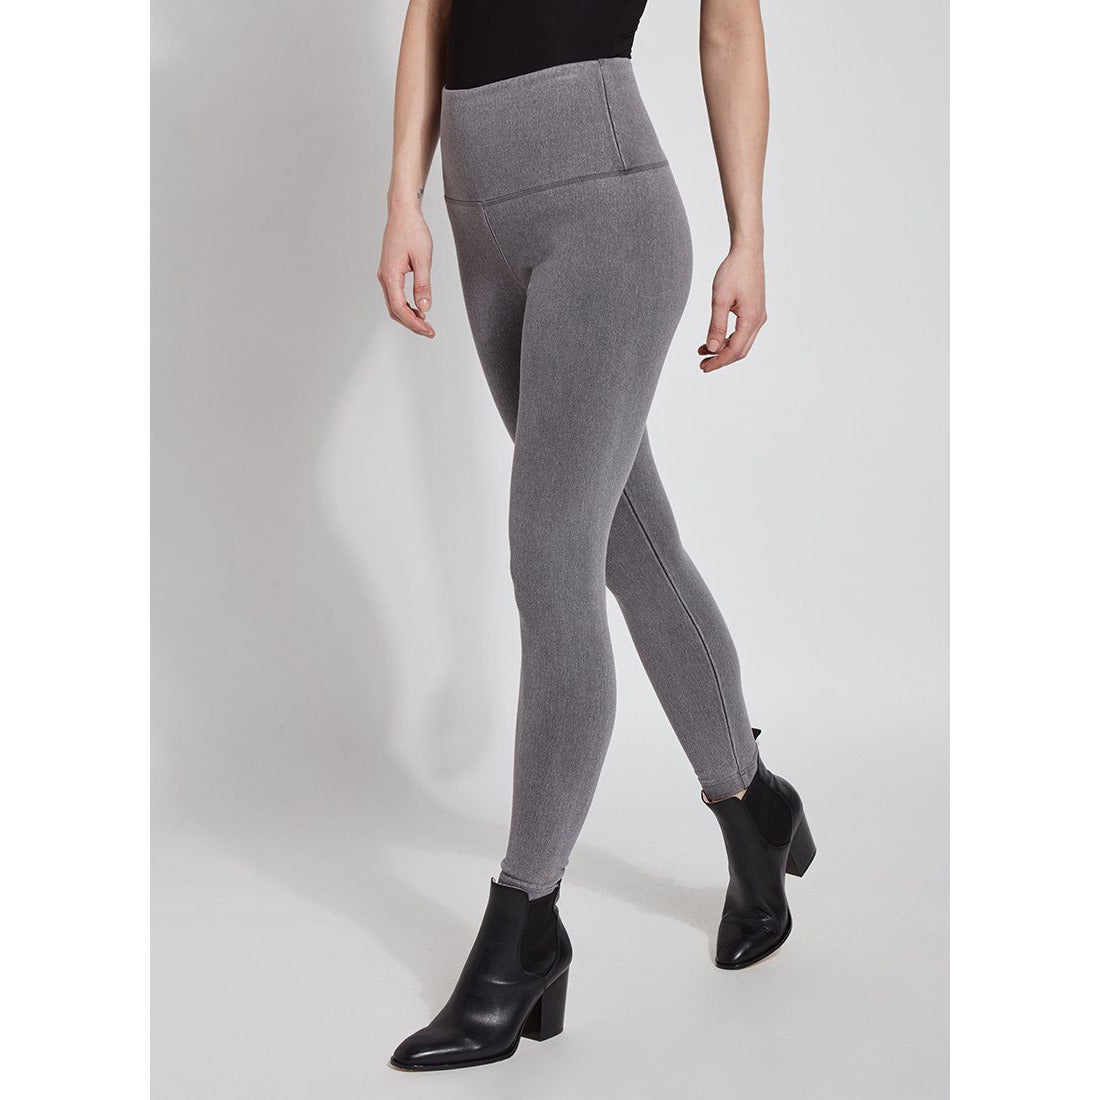 Lysse Denim Legging Grey - Fashion Crossroads Inc